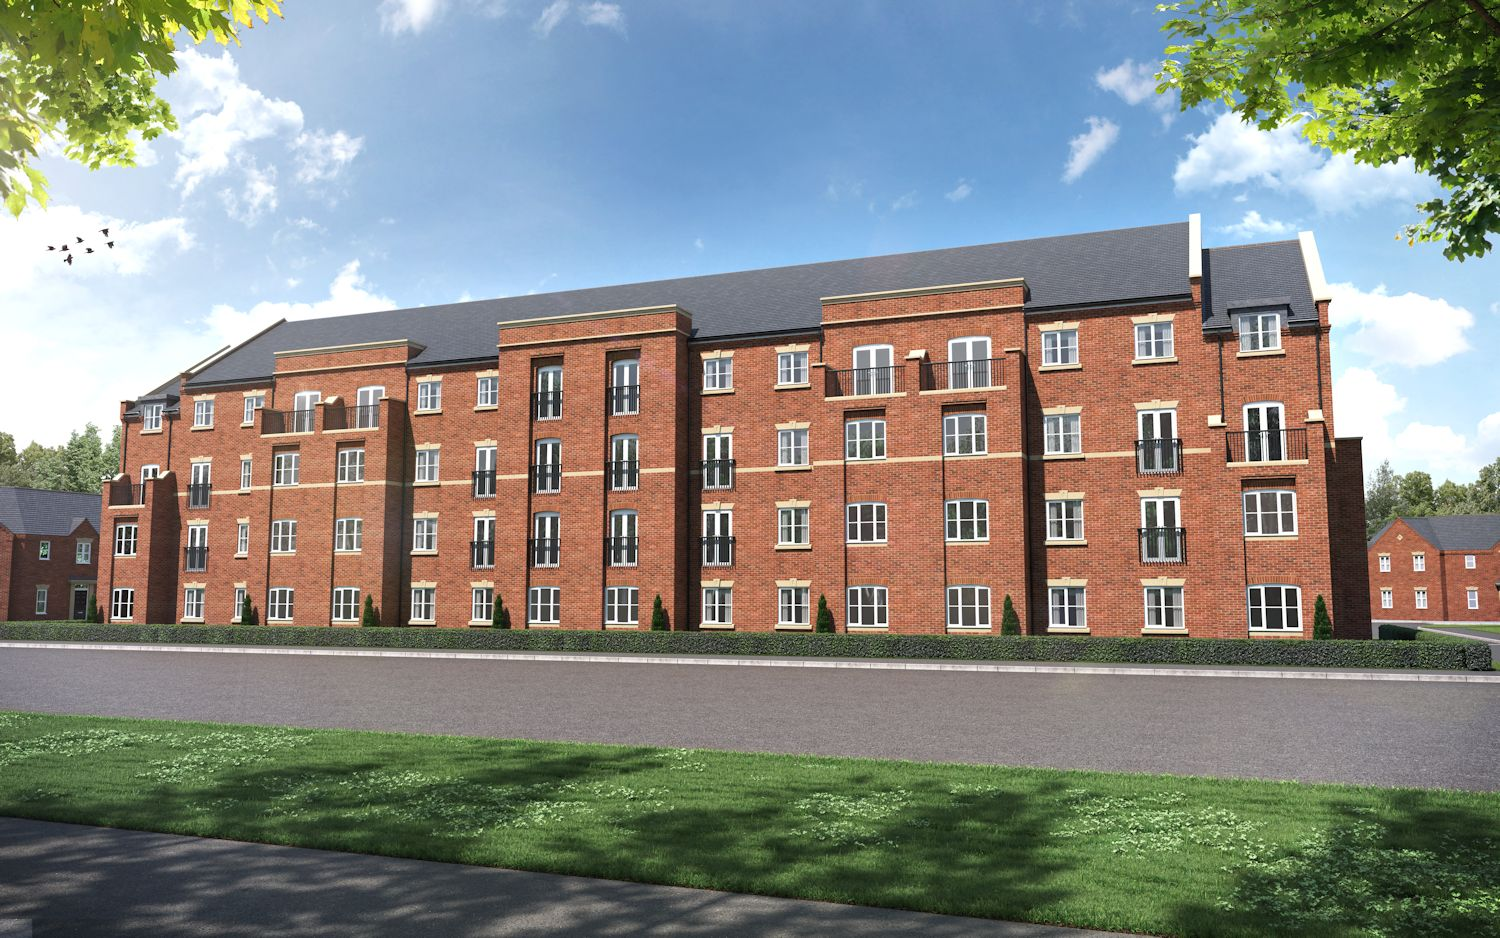 A1 Ground Floor Apartment (Plots 437 & 485)